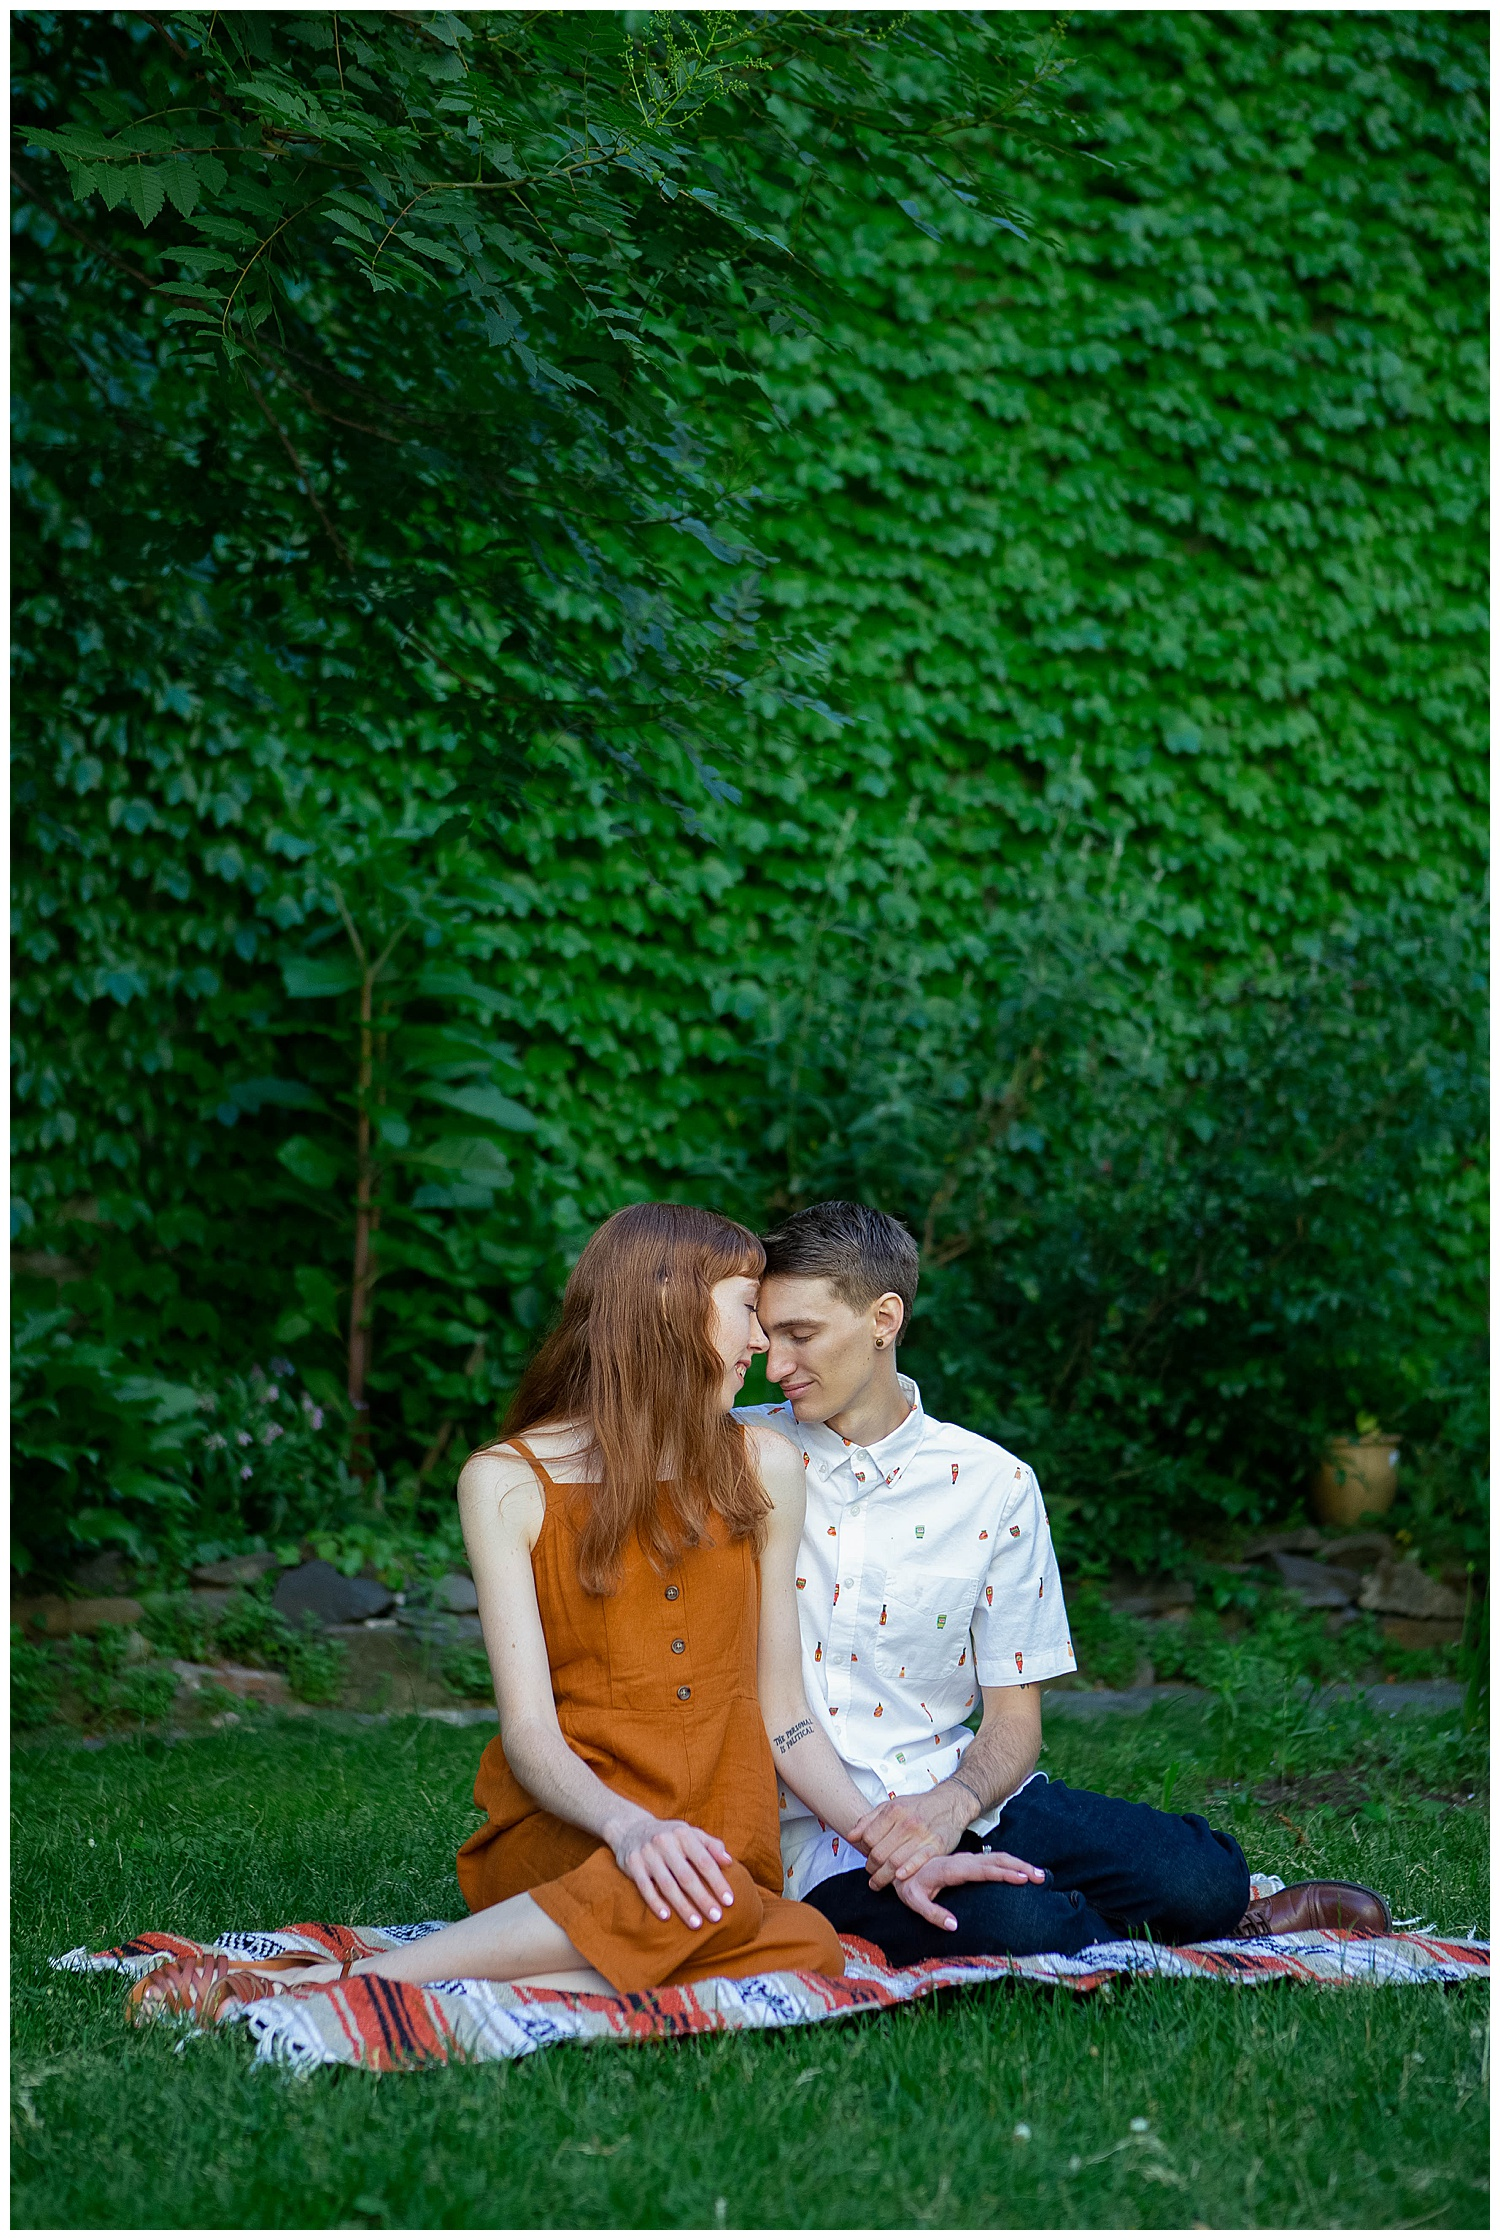 Kate-Alison-Photography-Central-Park-Engagement-Session-Madison-Alex-11.jpg